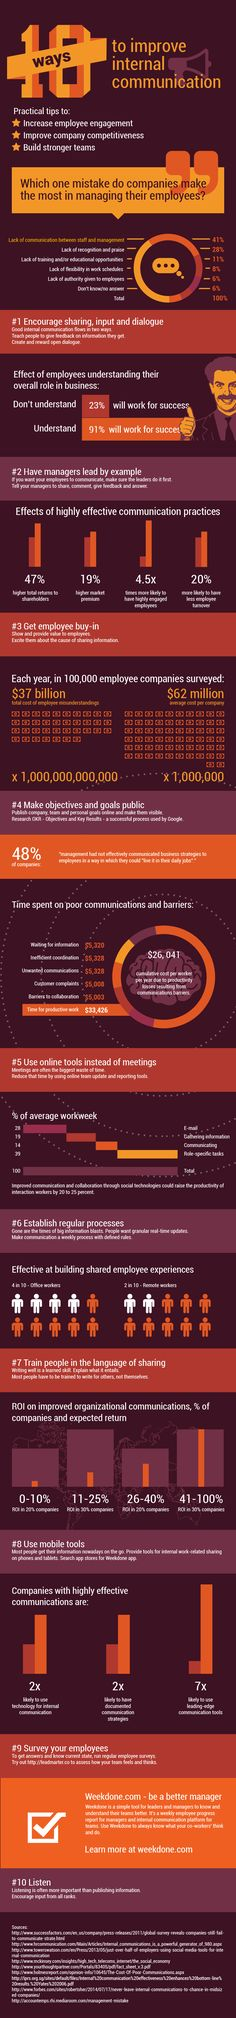 infographie communication interne efficace